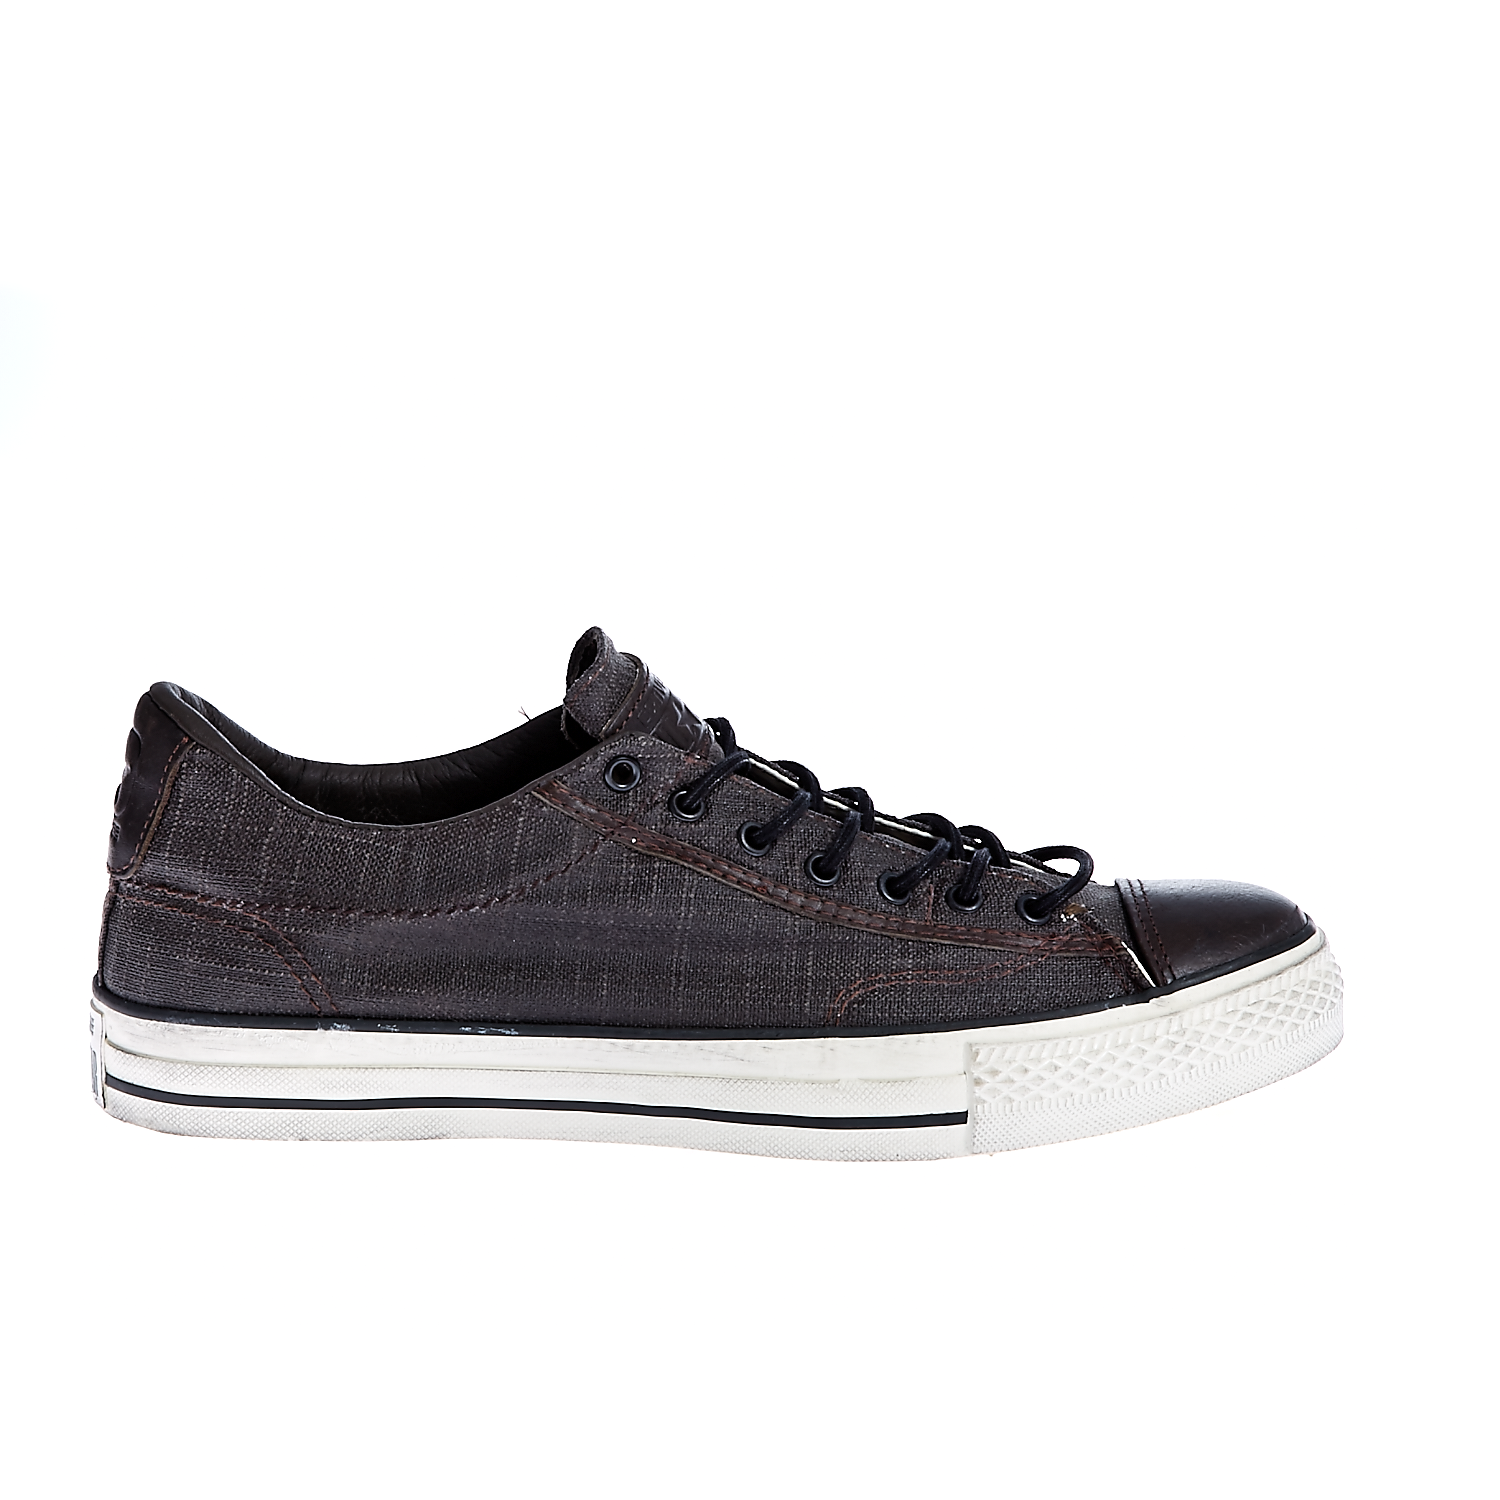 CONVERSE – Unisex παπούτσια Chuck Taylor All Star Vintage μαύρα